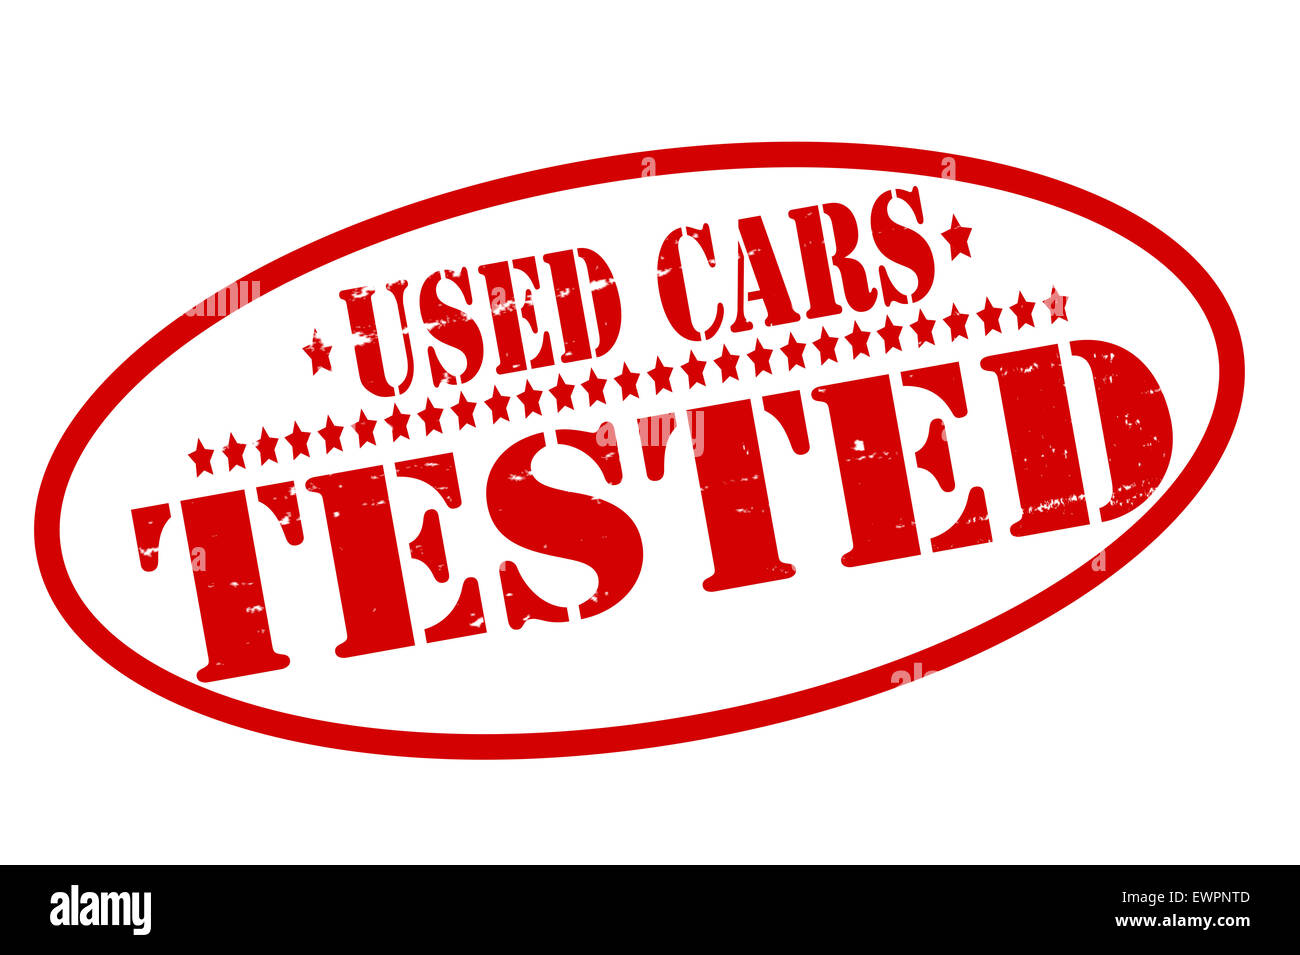 Rubber stamps with text used cars tested inside, illustration - Stock Image